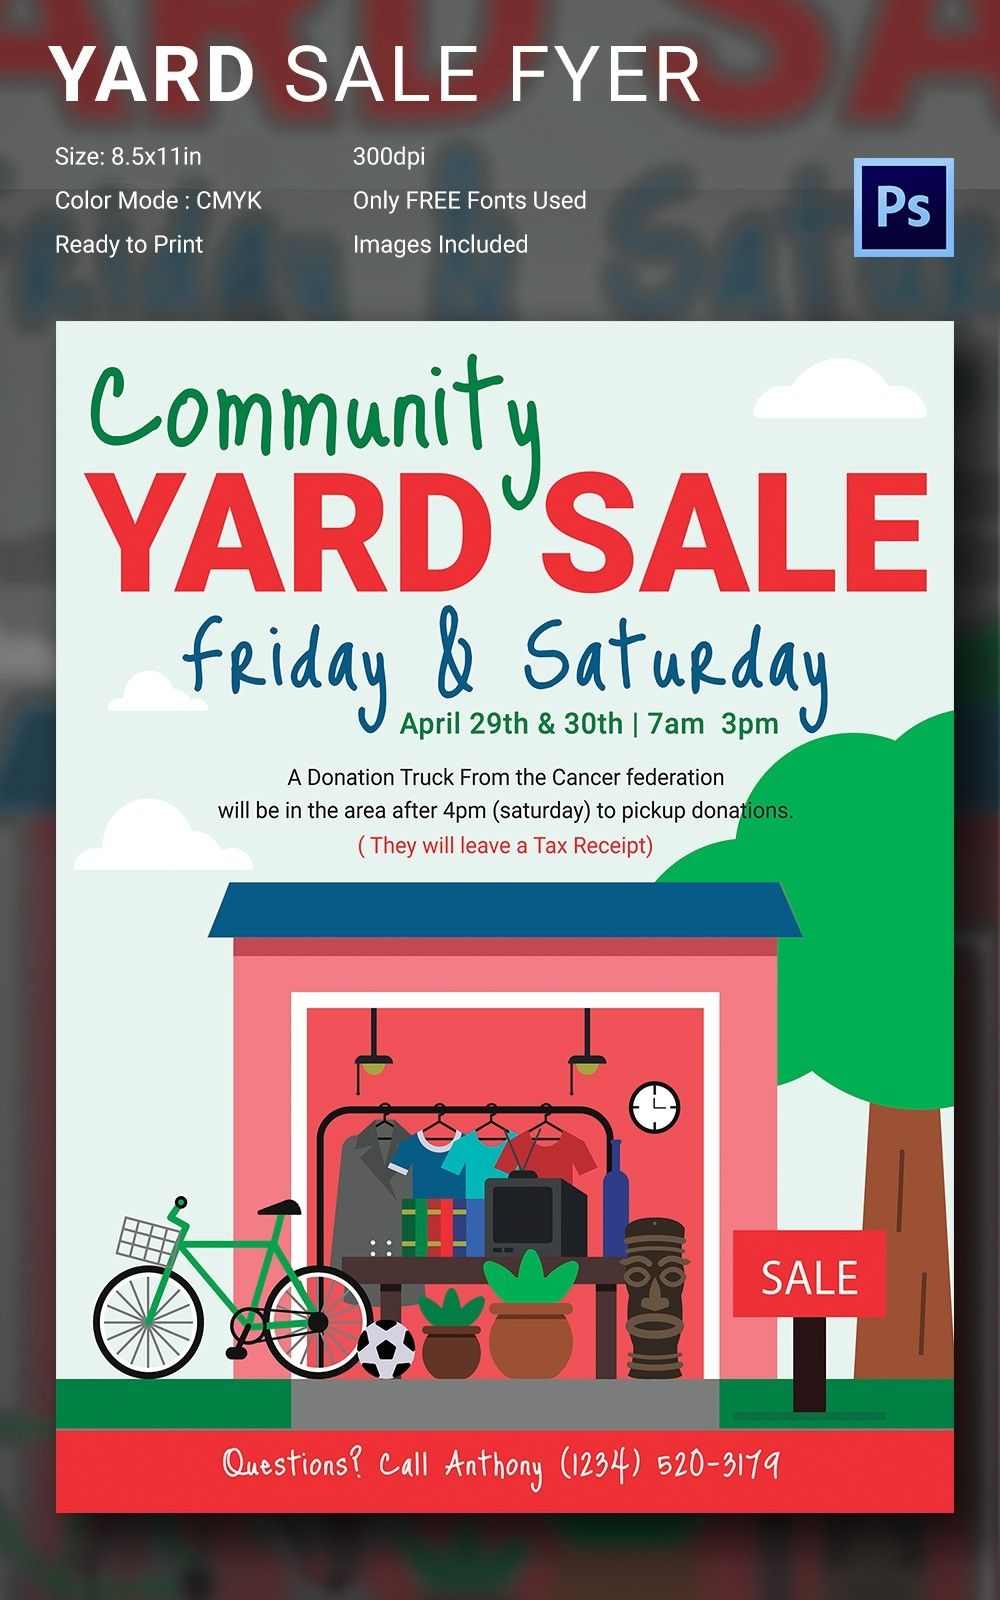 Yard Sale Flyer Template Why Is Yard Sale Flyer Template